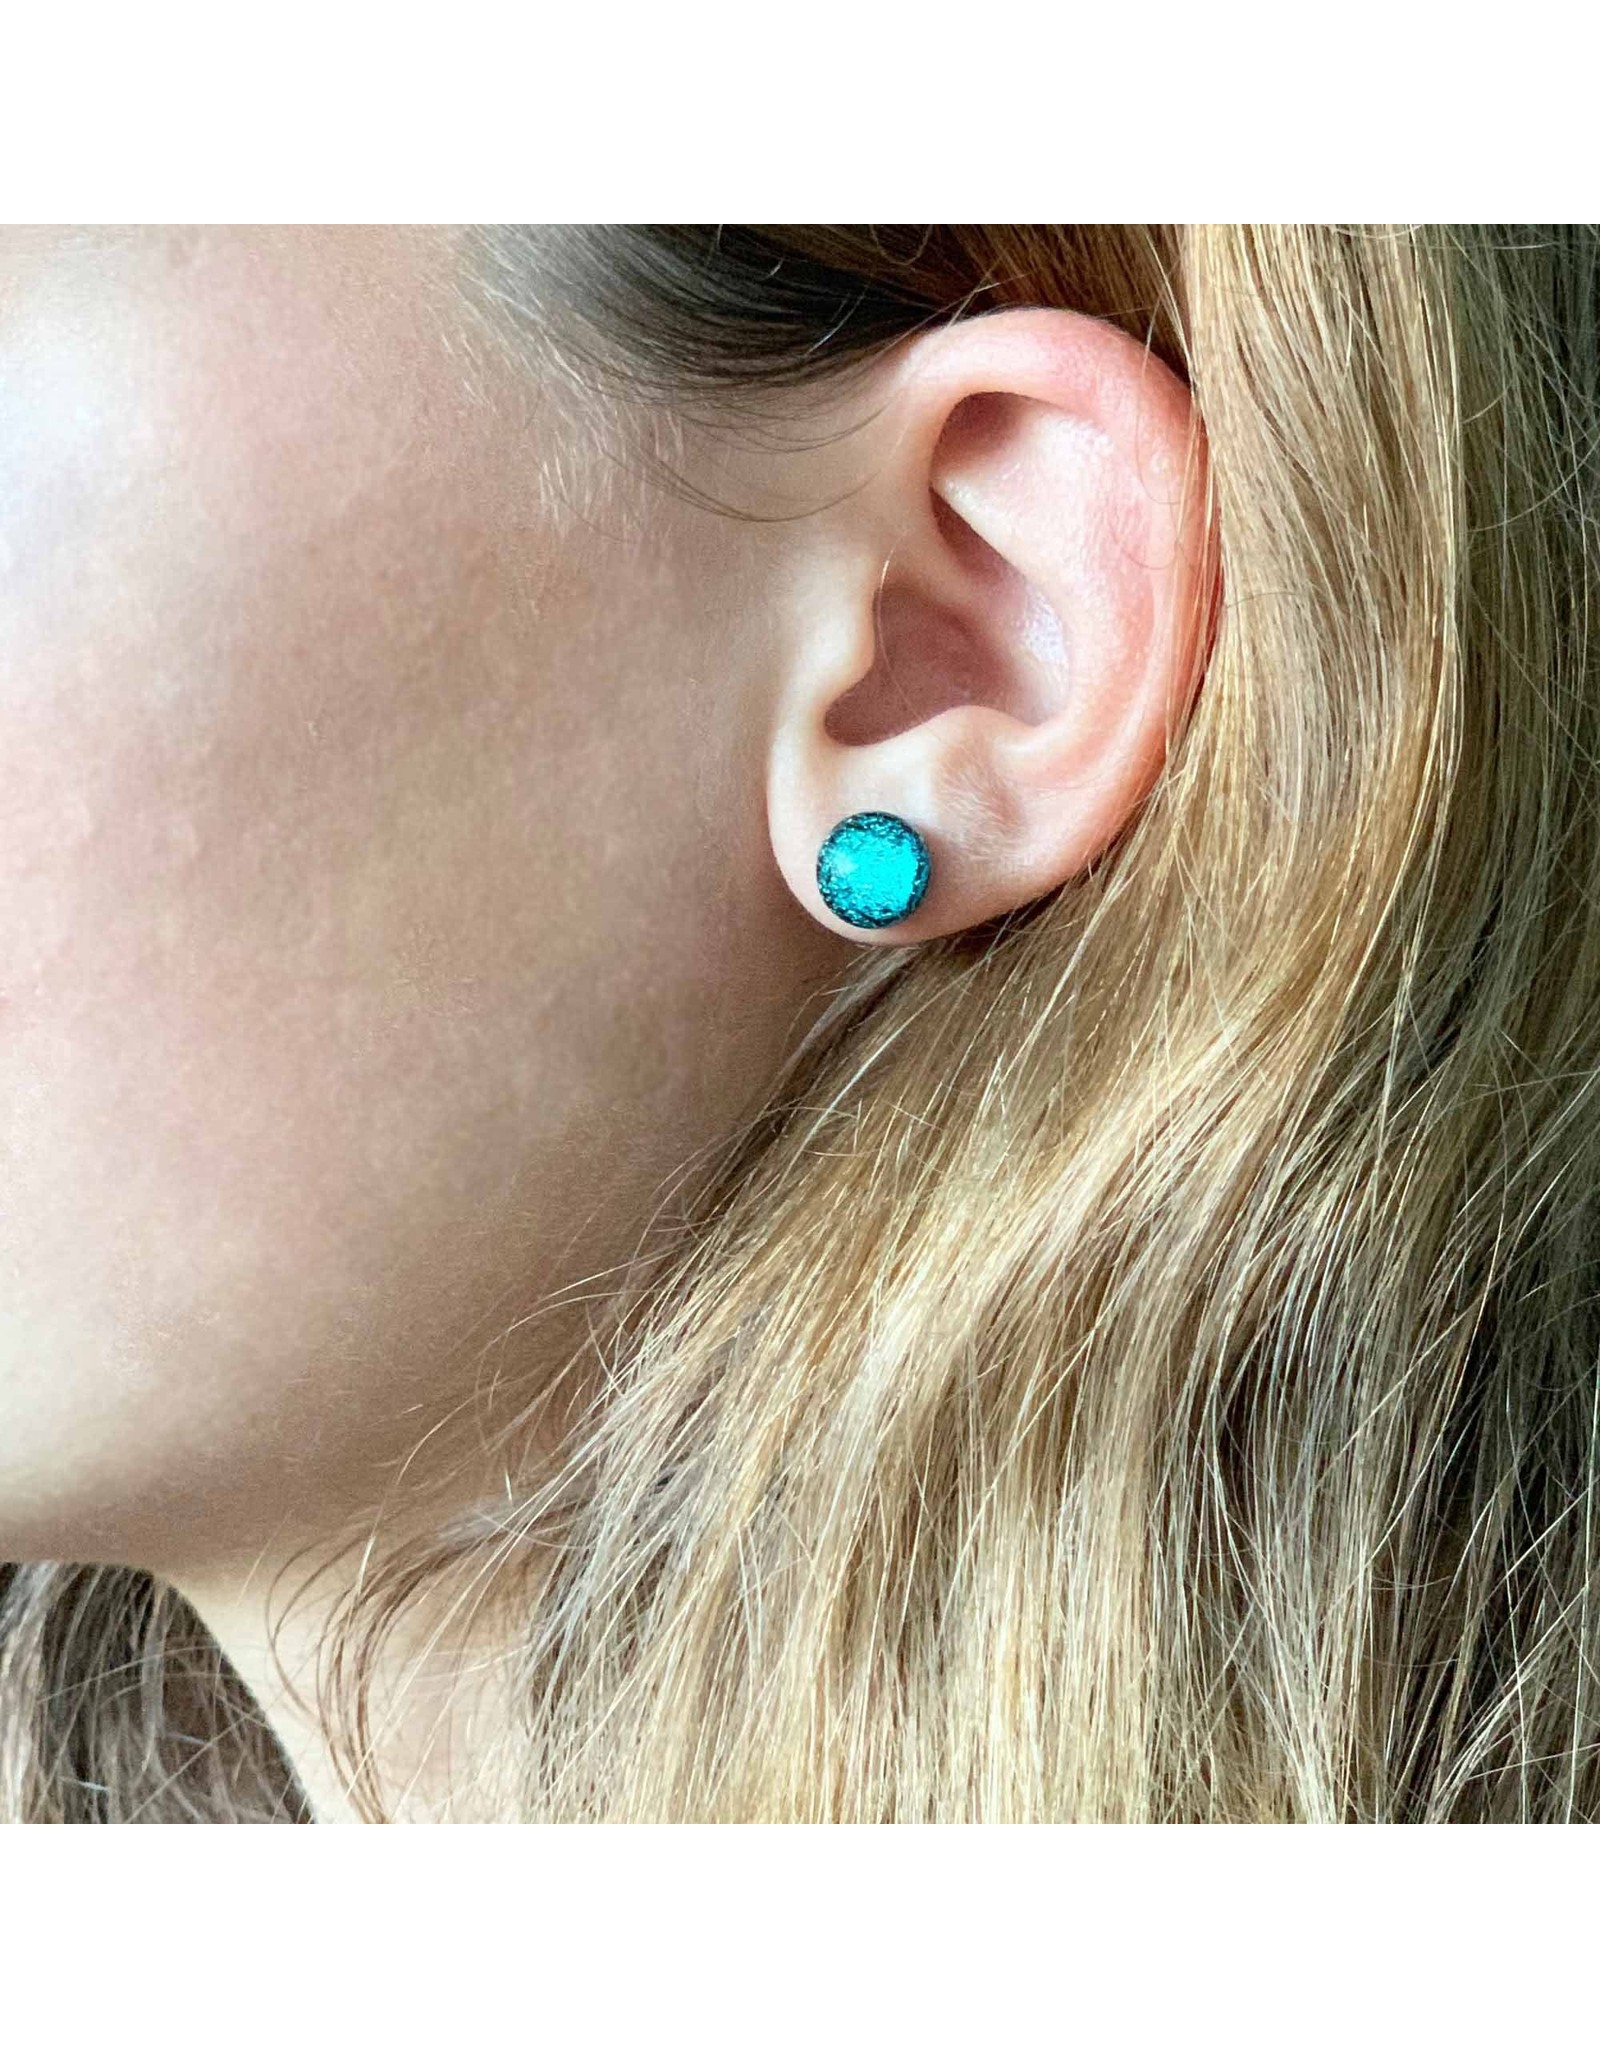 Global Crafts Round Glass Stud Earrings, Turquoise